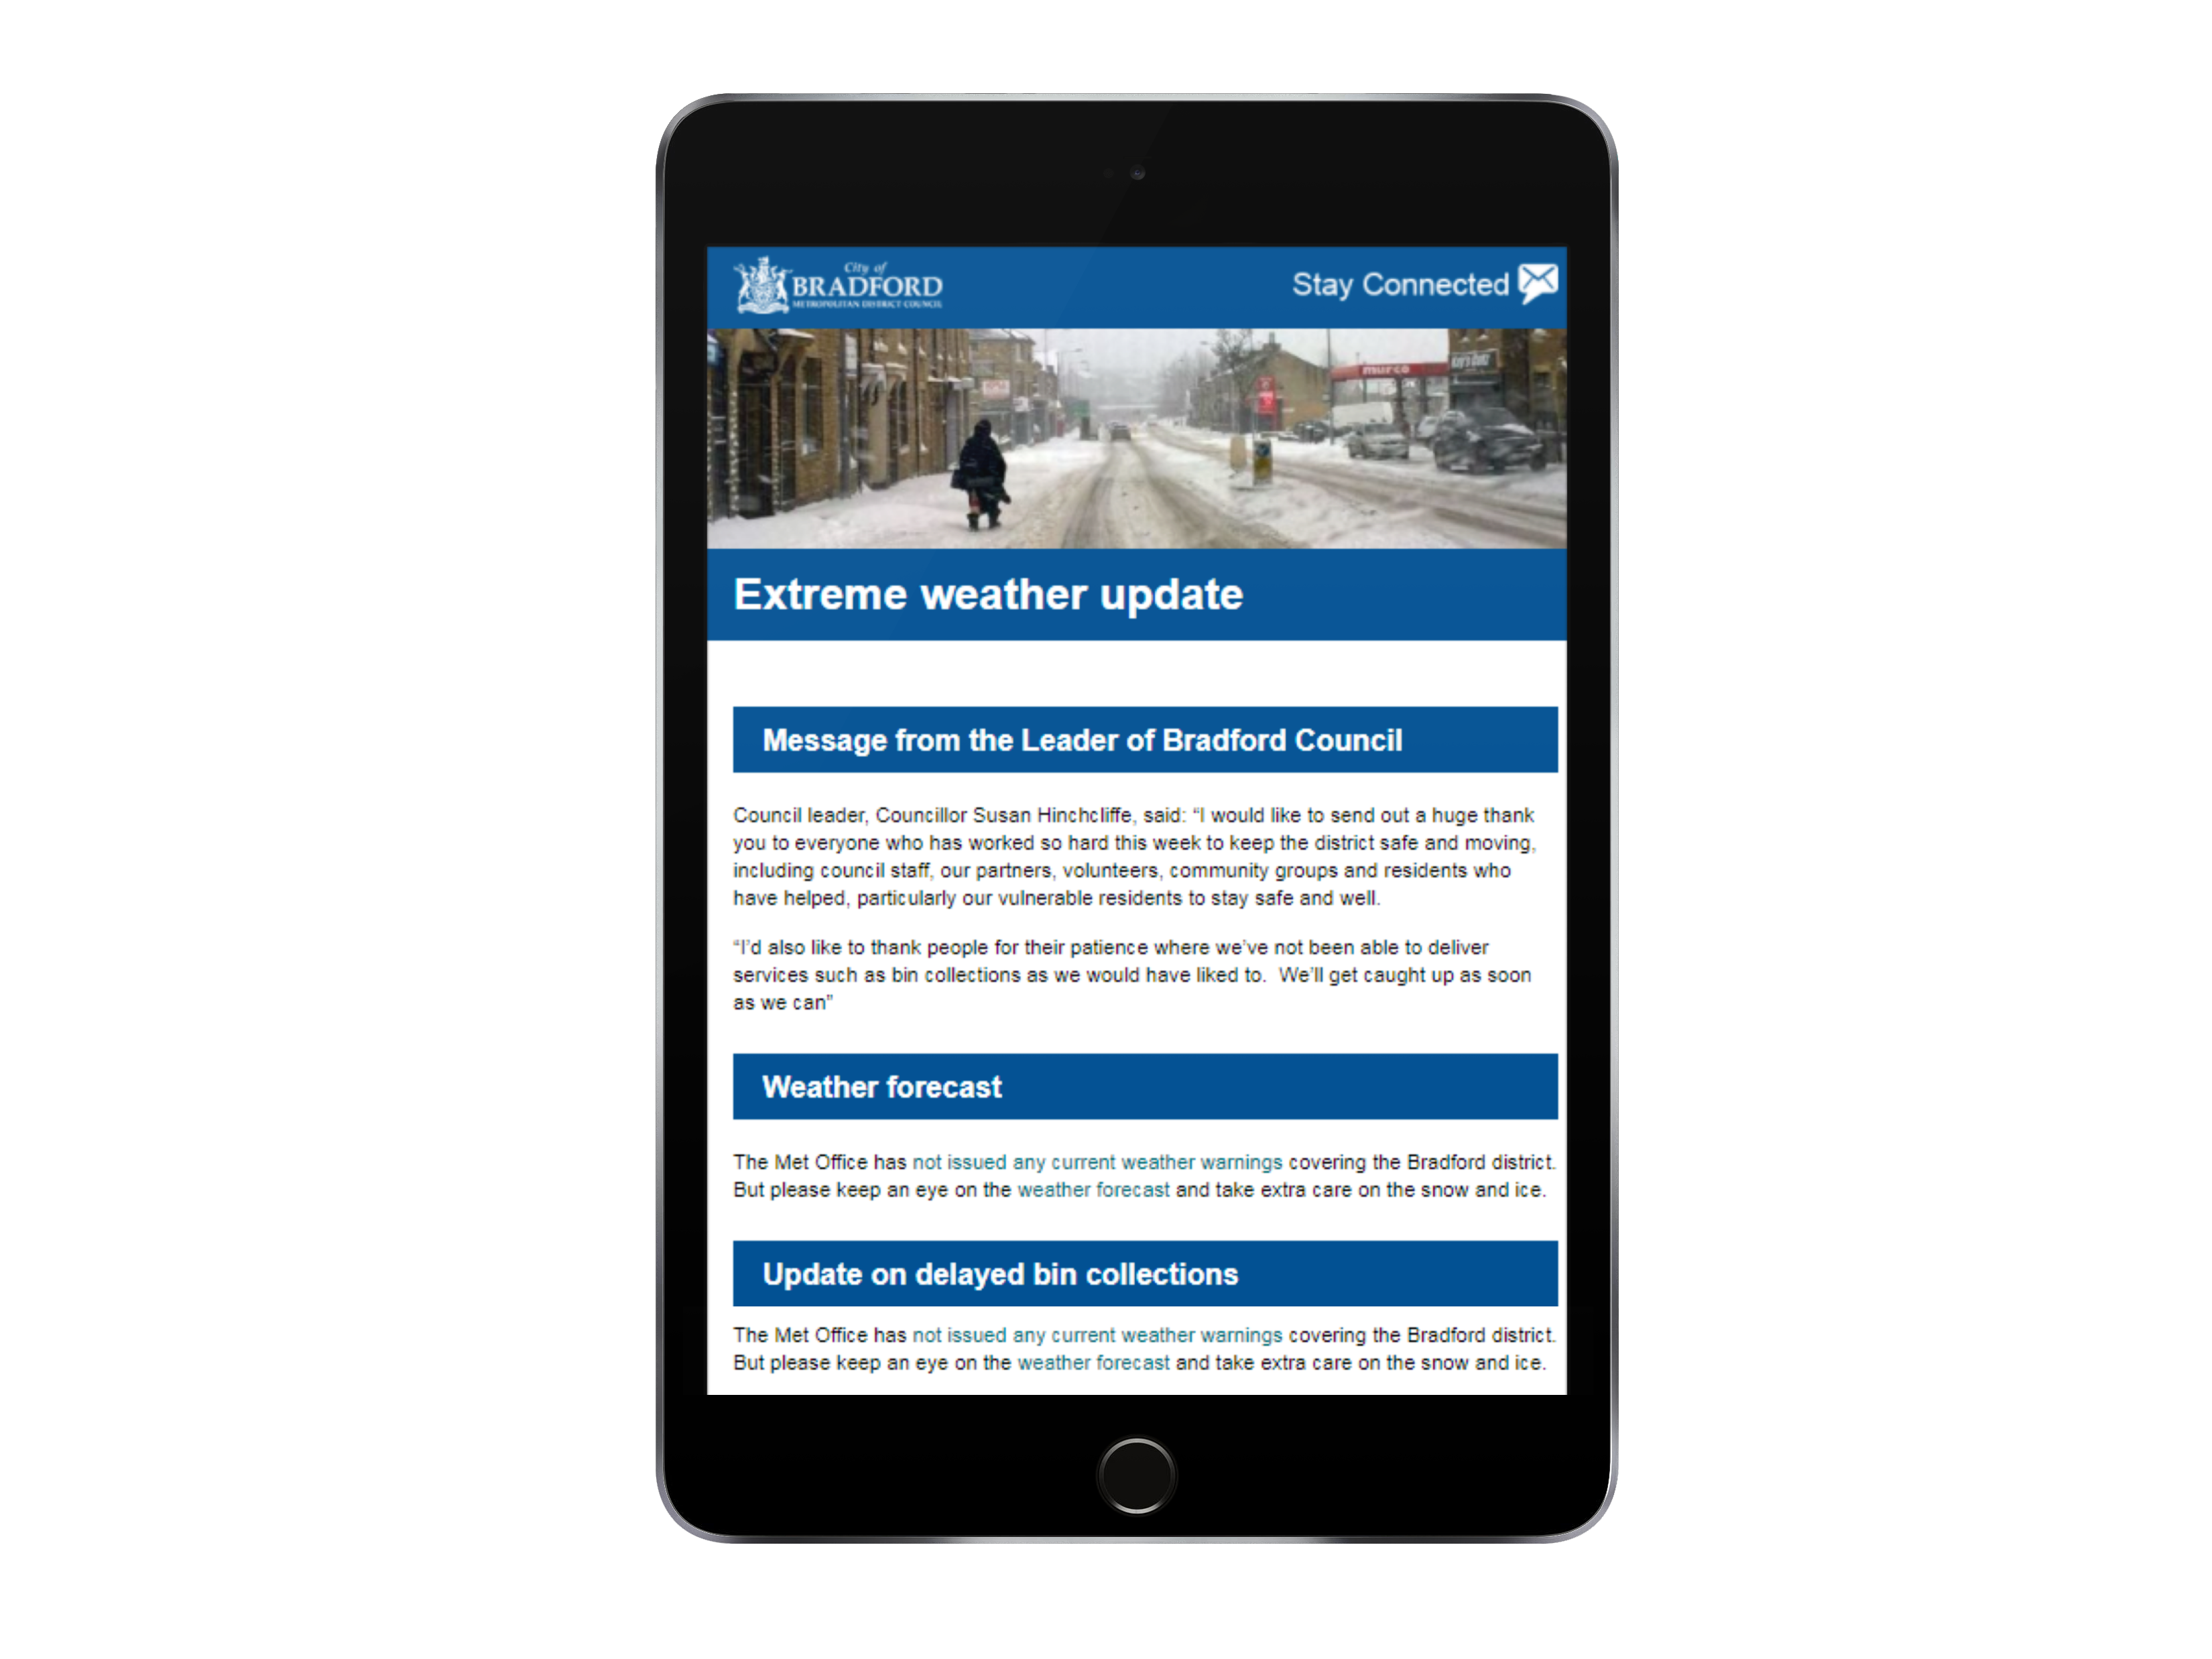 extreme weather alert email bulletin example from bradford council, ipad mockup